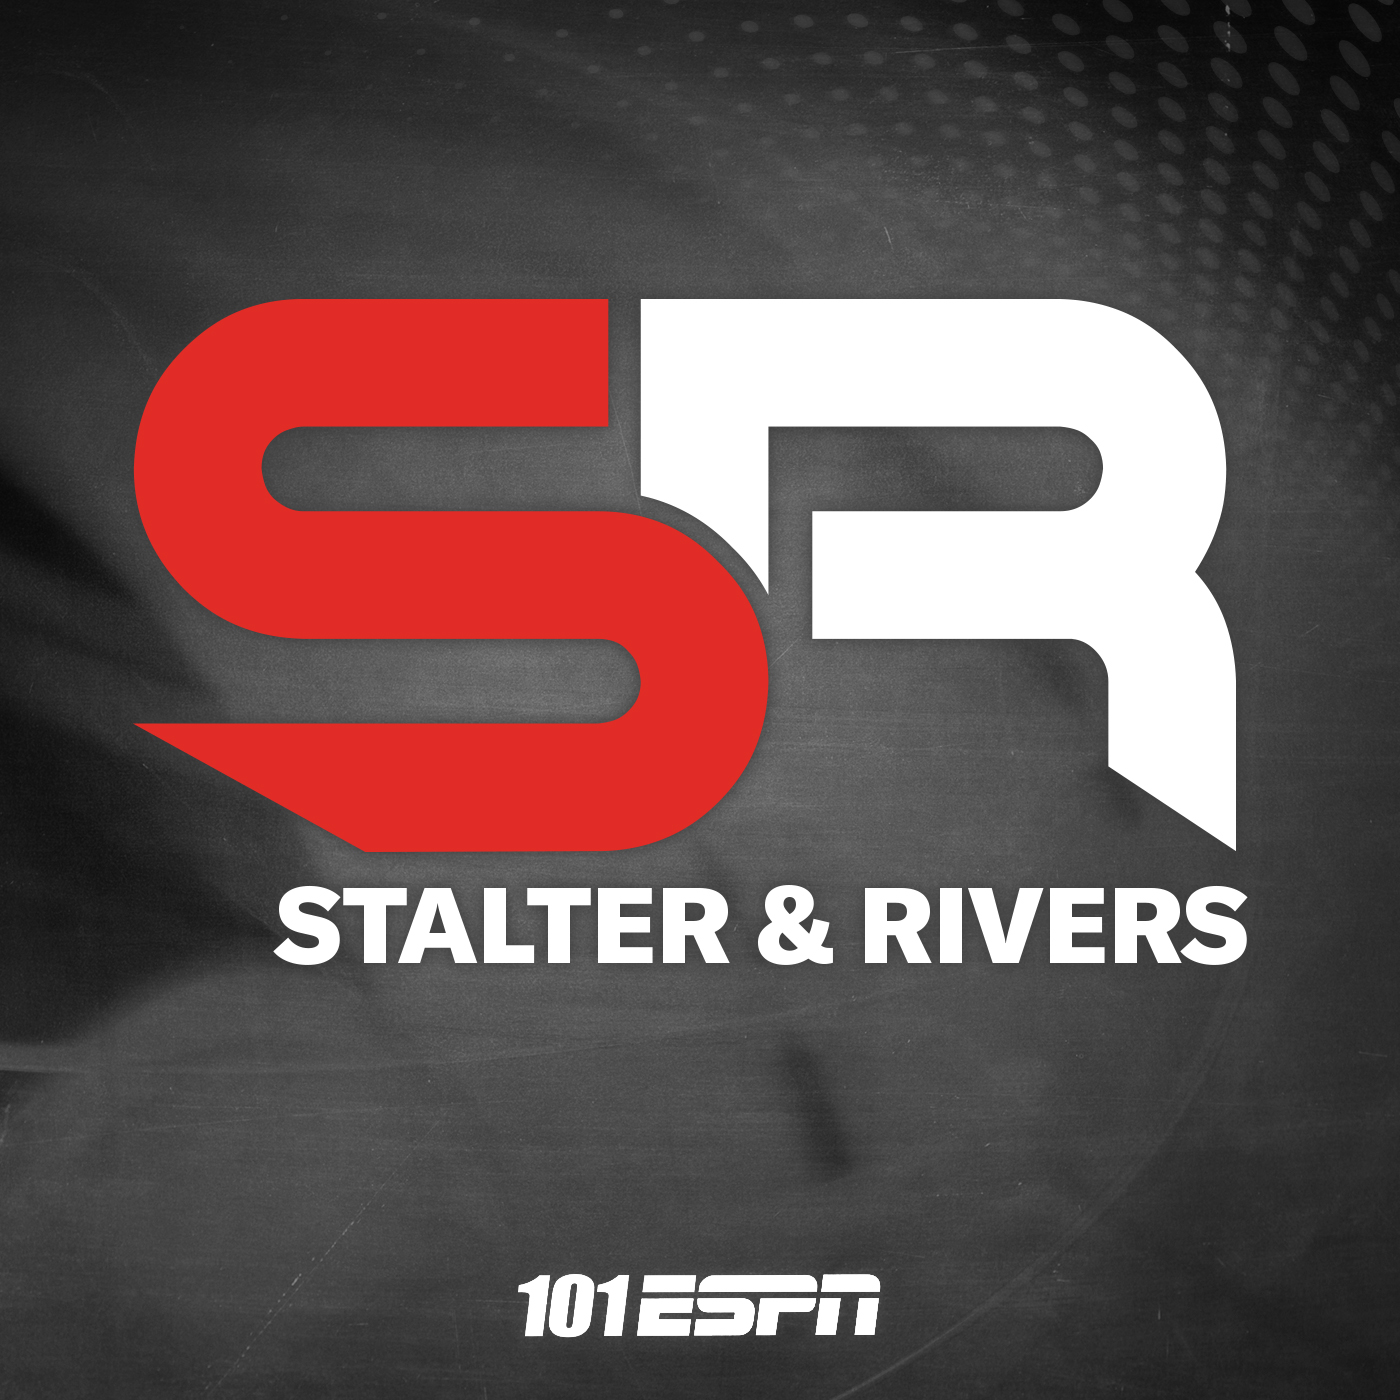 Stalter & Rivers